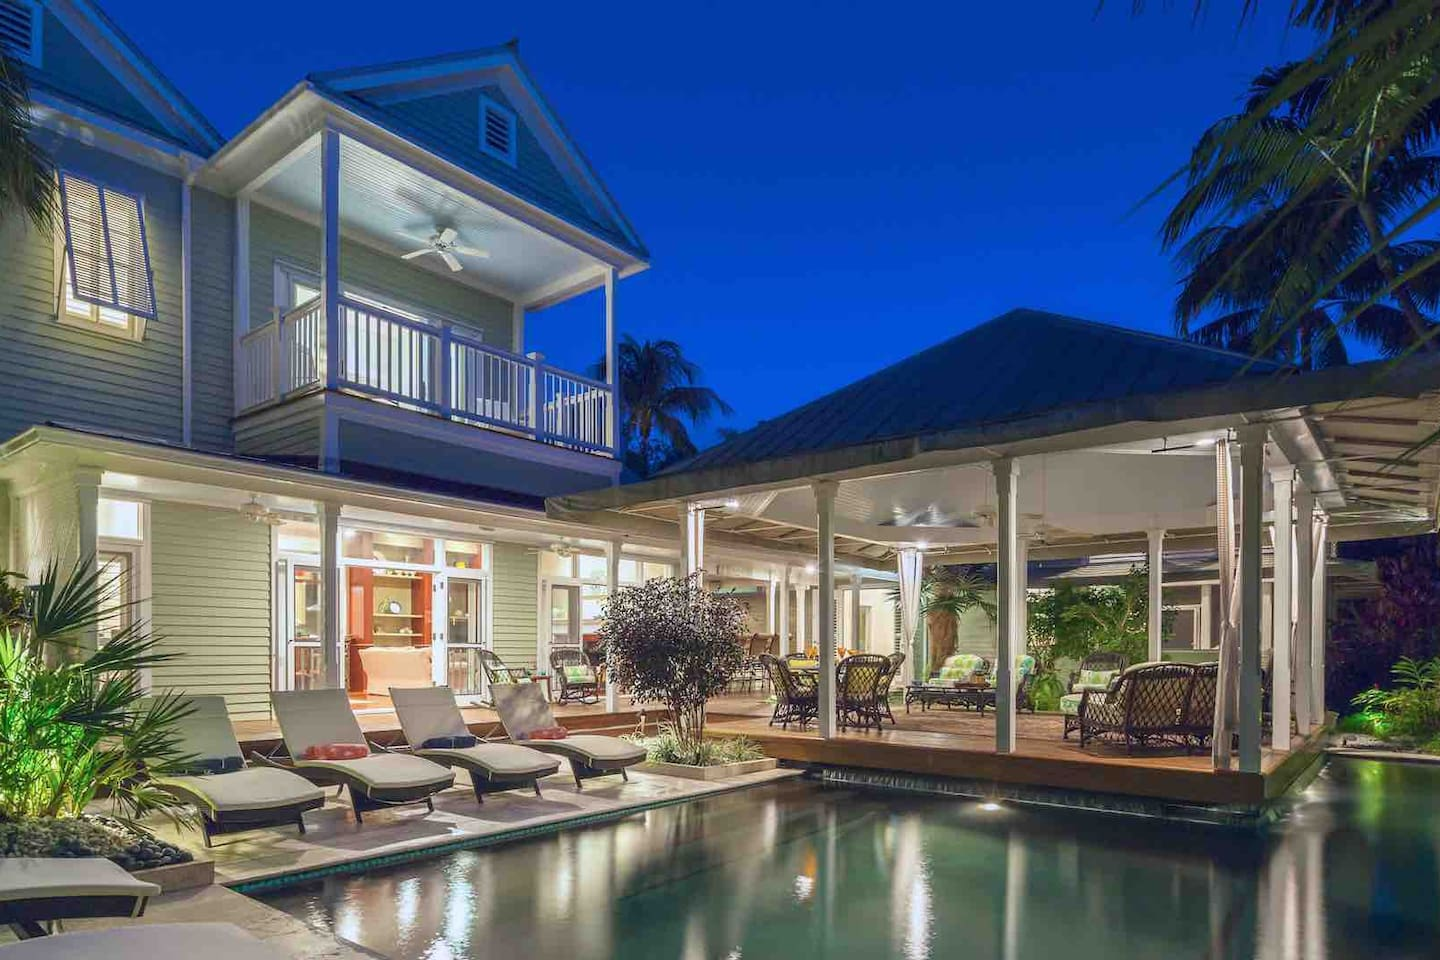 Private Key West beach estate pool and pavilion patio